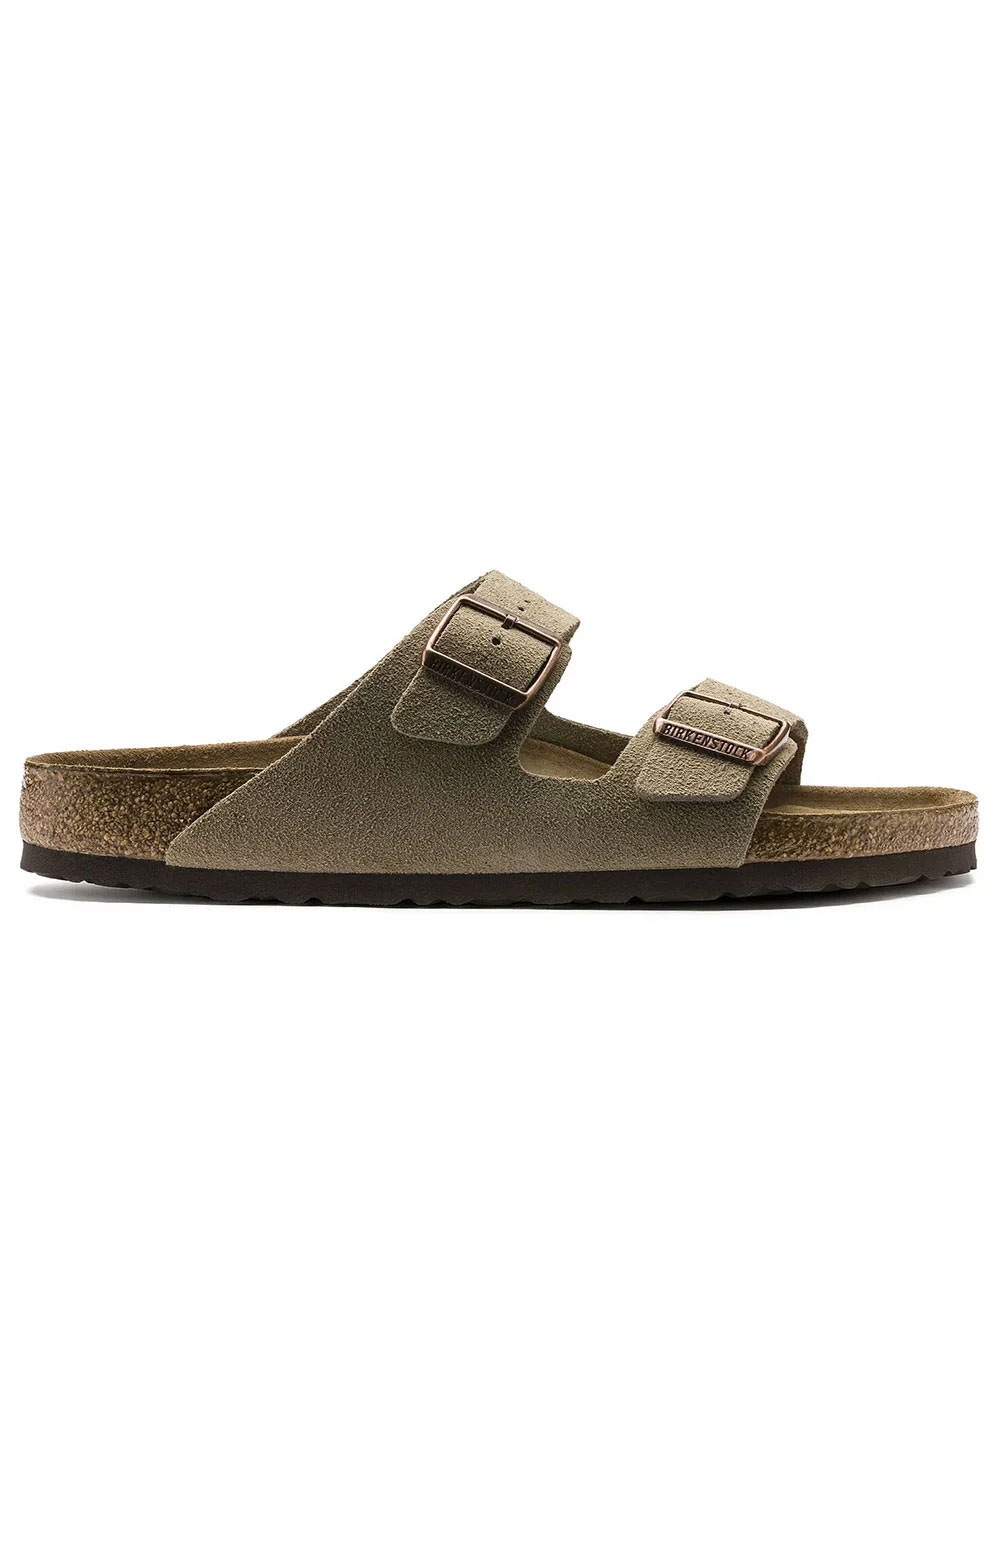 (0951303) Arizona Soft Foodbed Sandals - Taupe 5